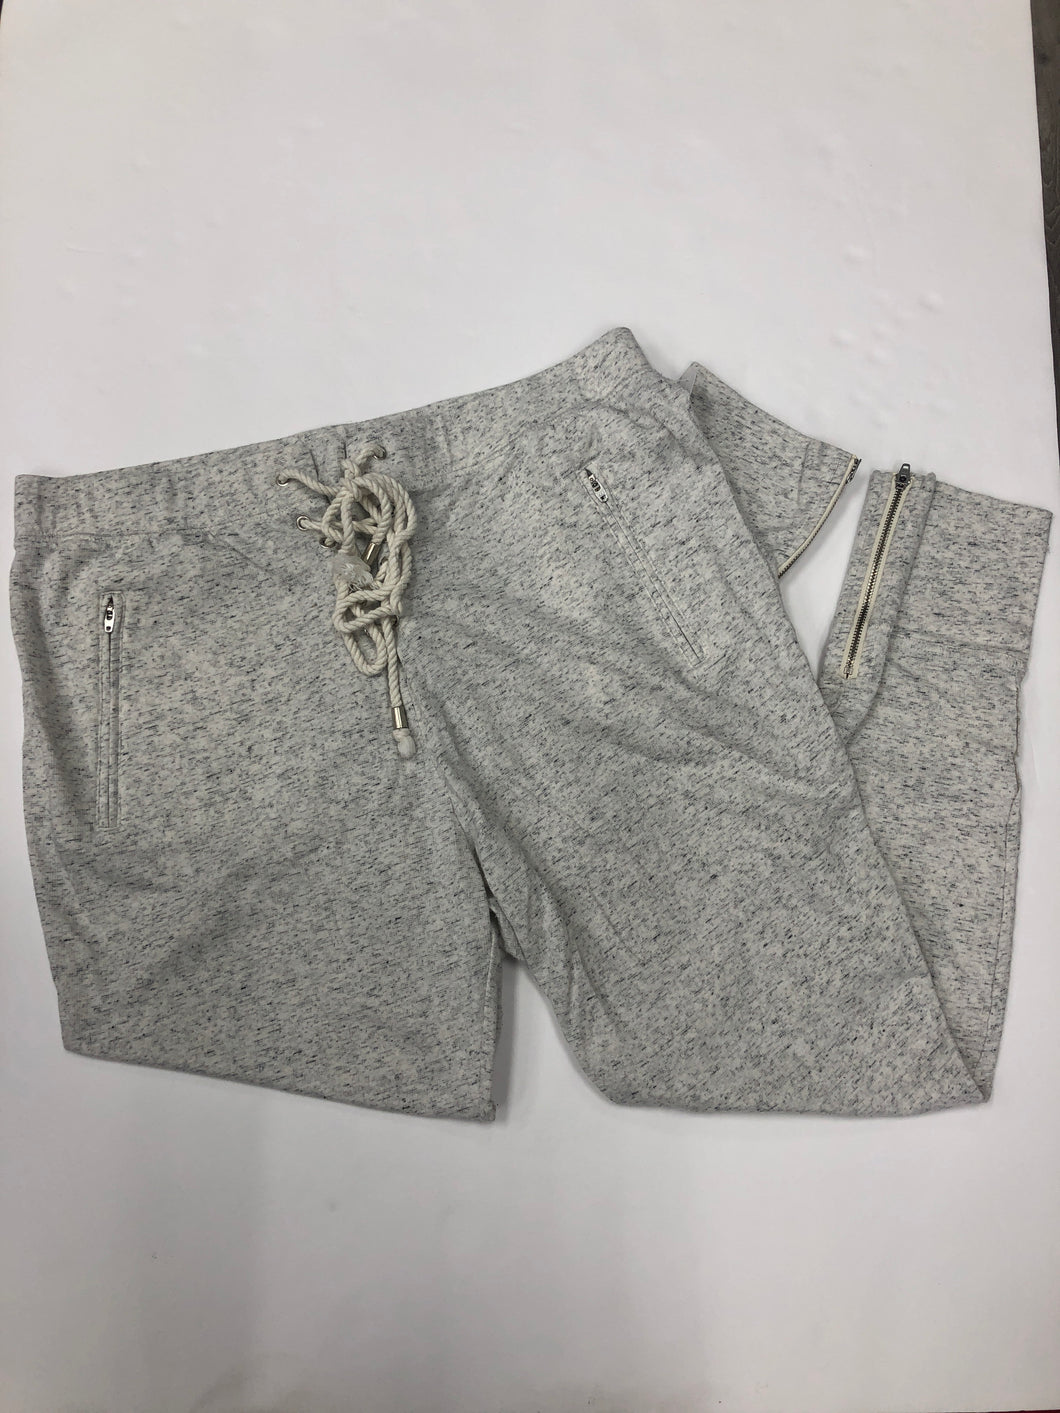 L freepeople sweatpants